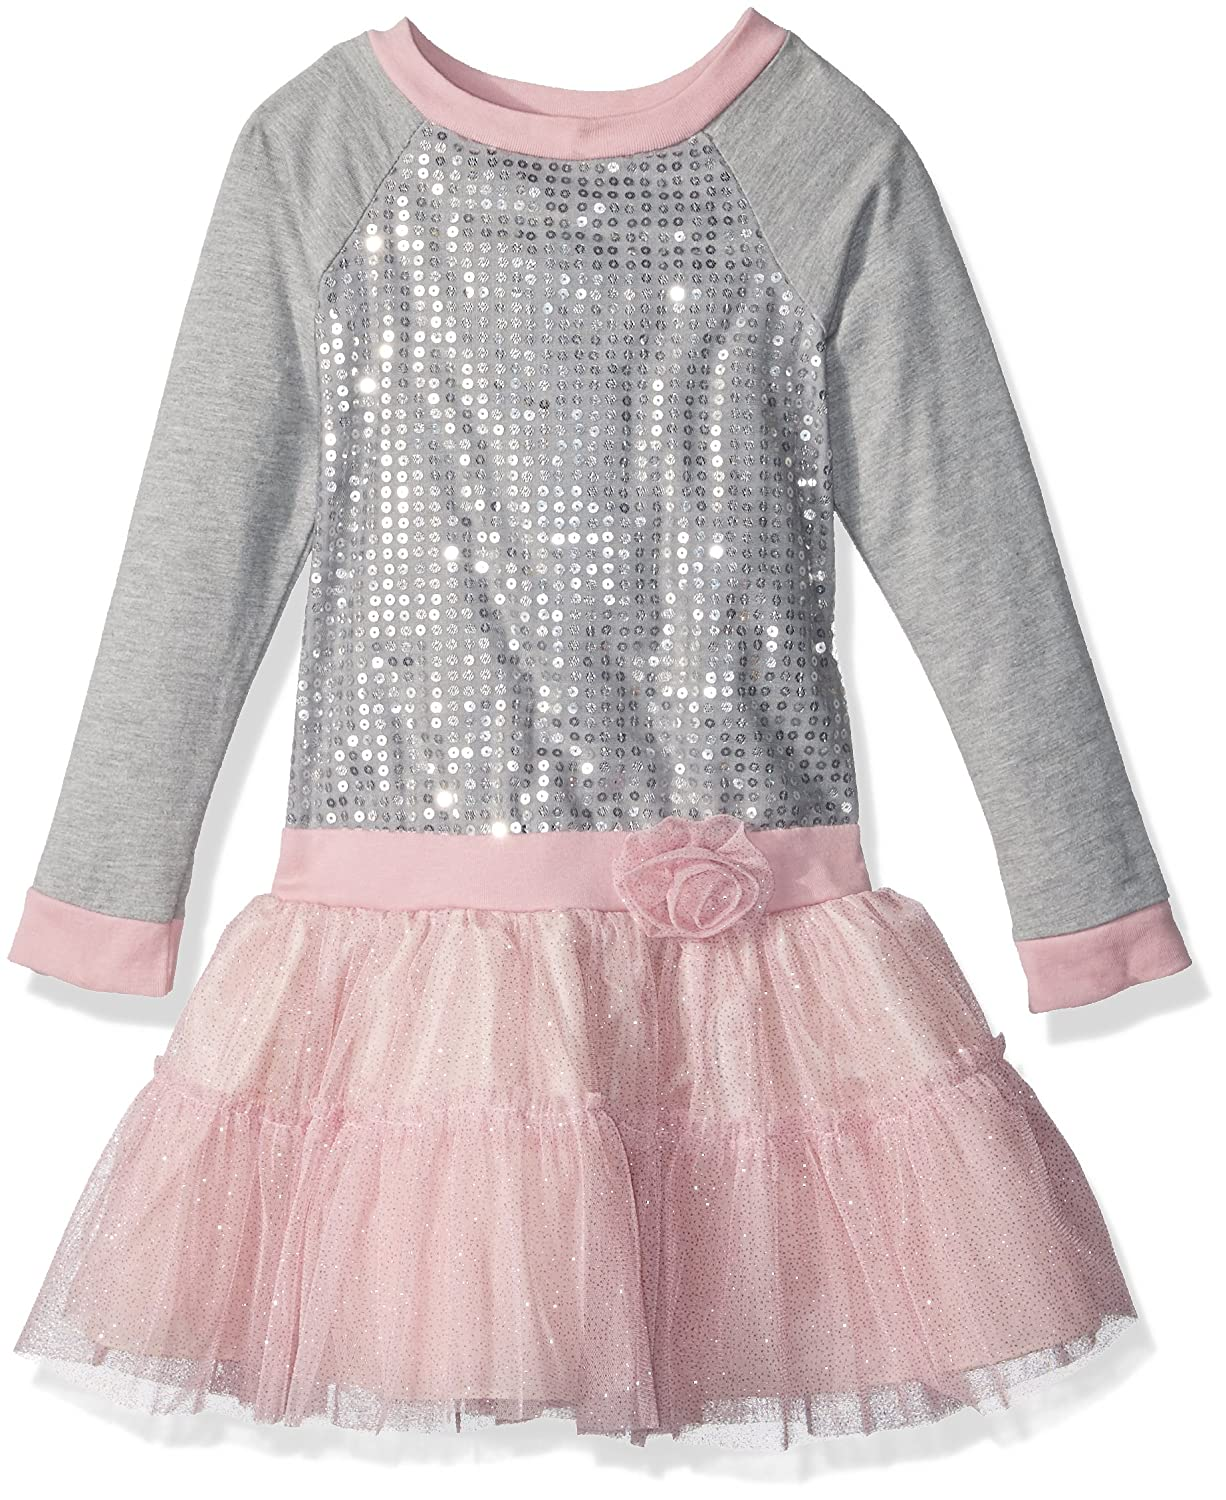 1920s Children Fashions: Girls, Boys, Baby Costumes  Girls Dress with Sequin Bodice and Flower Trim $27.99 AT vintagedancer.com